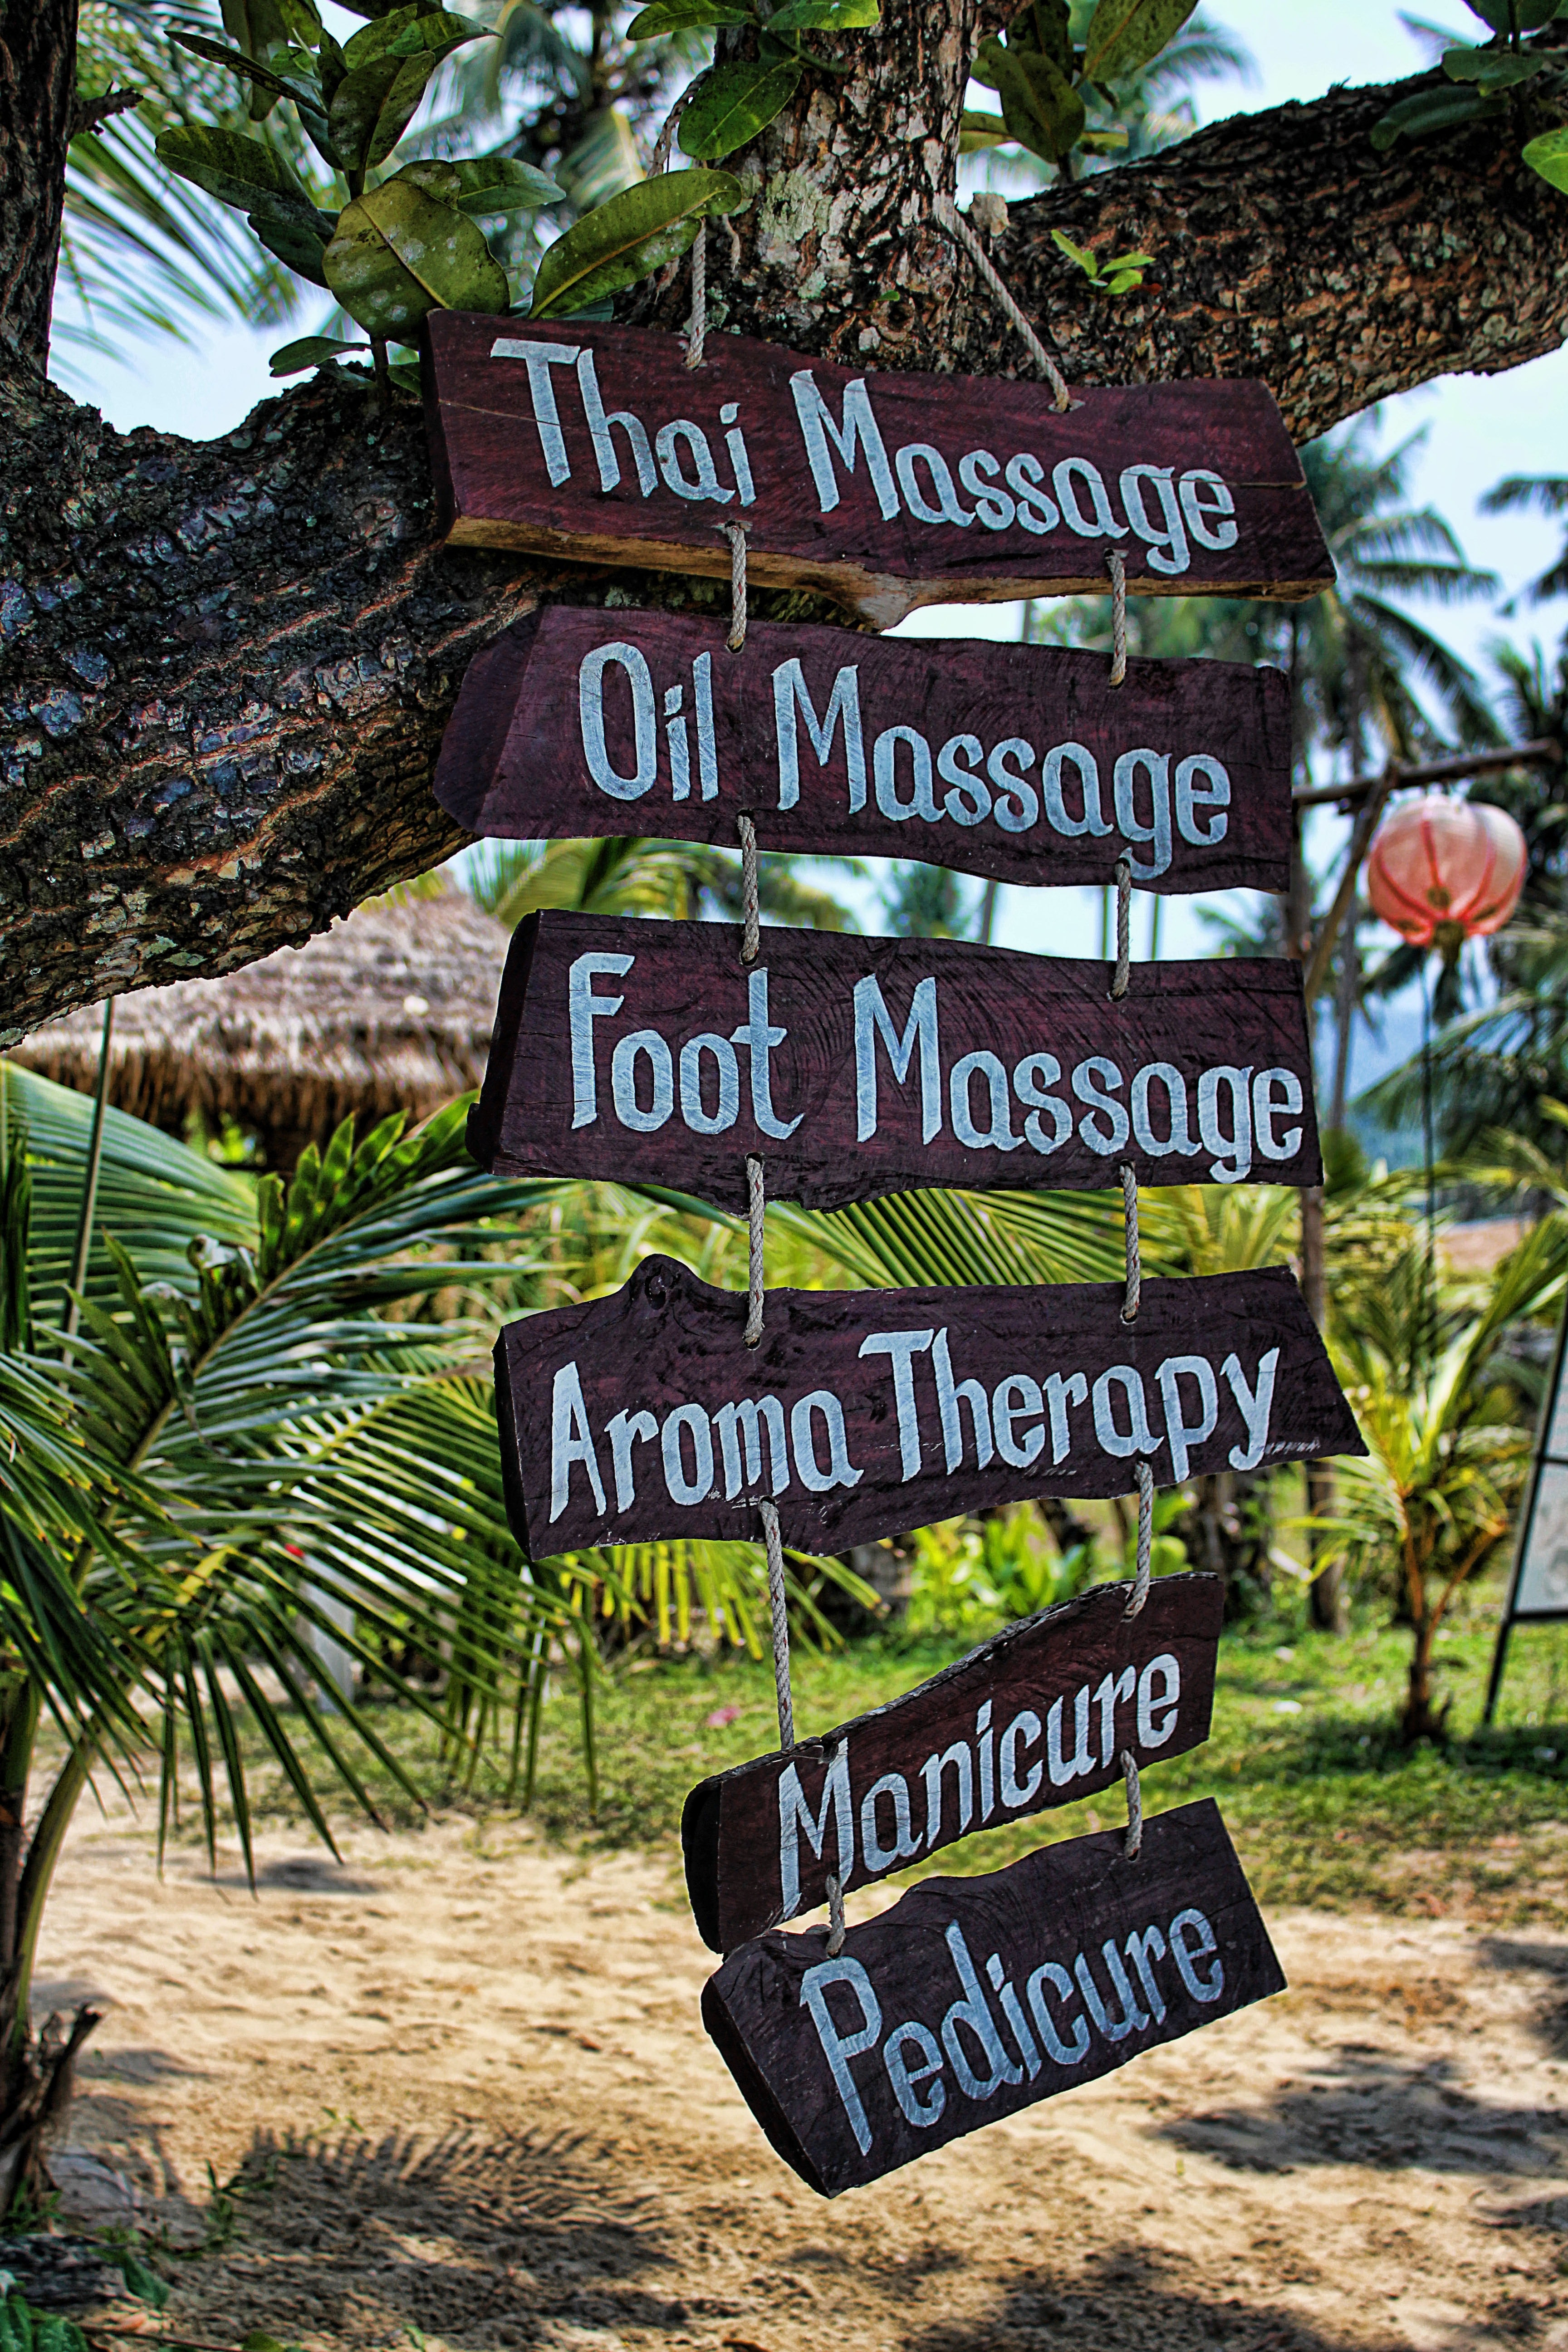 What are types of massages provided by Asian masseuse?